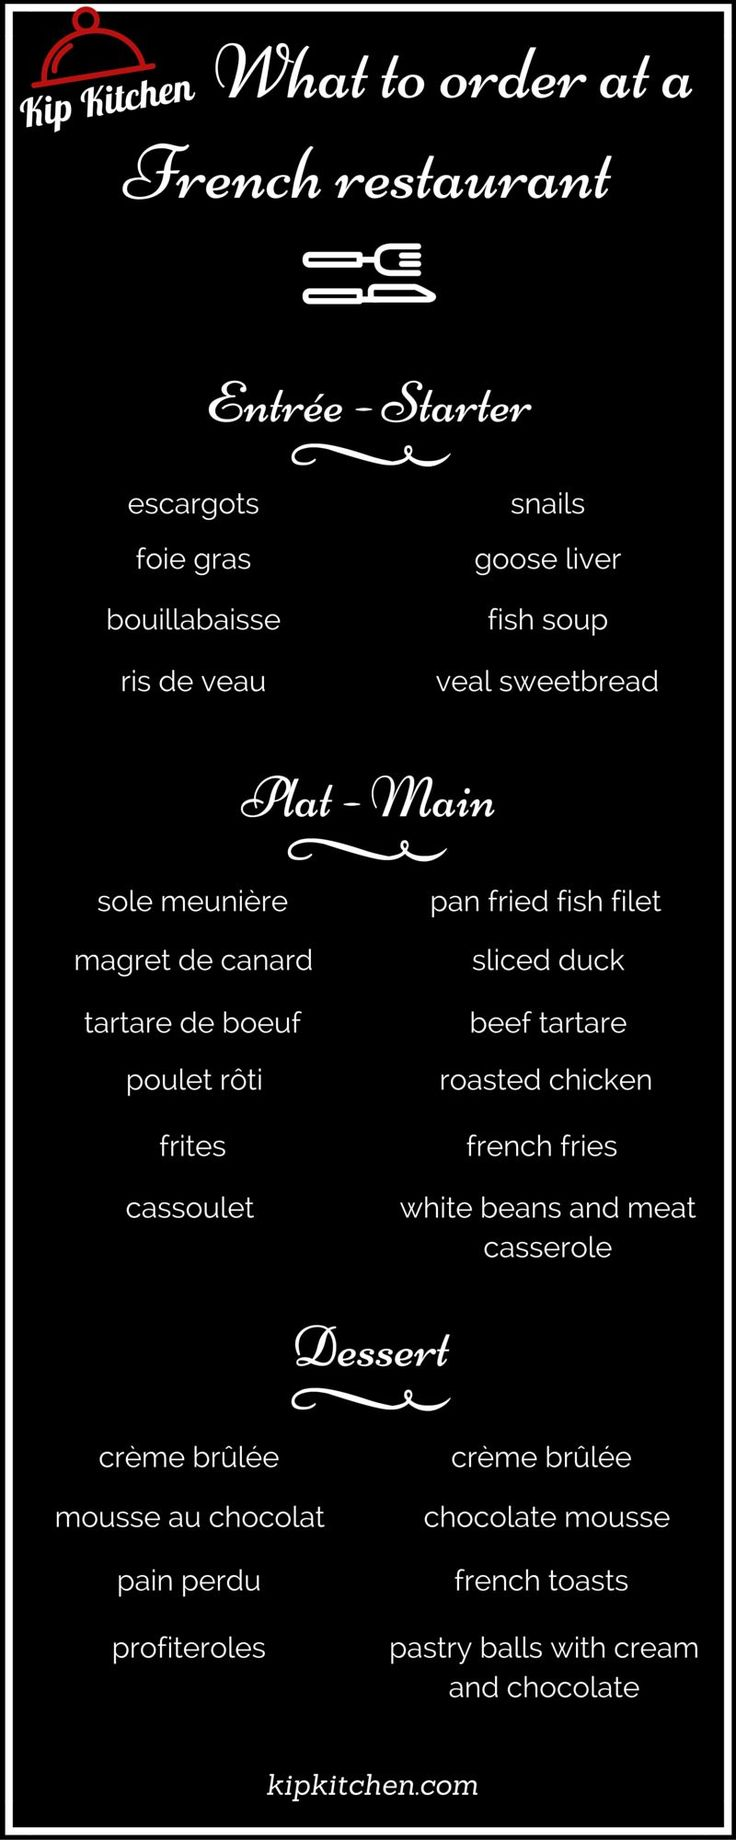 Famous French Dishes. What to order at a French Restaurant #food #paris #france